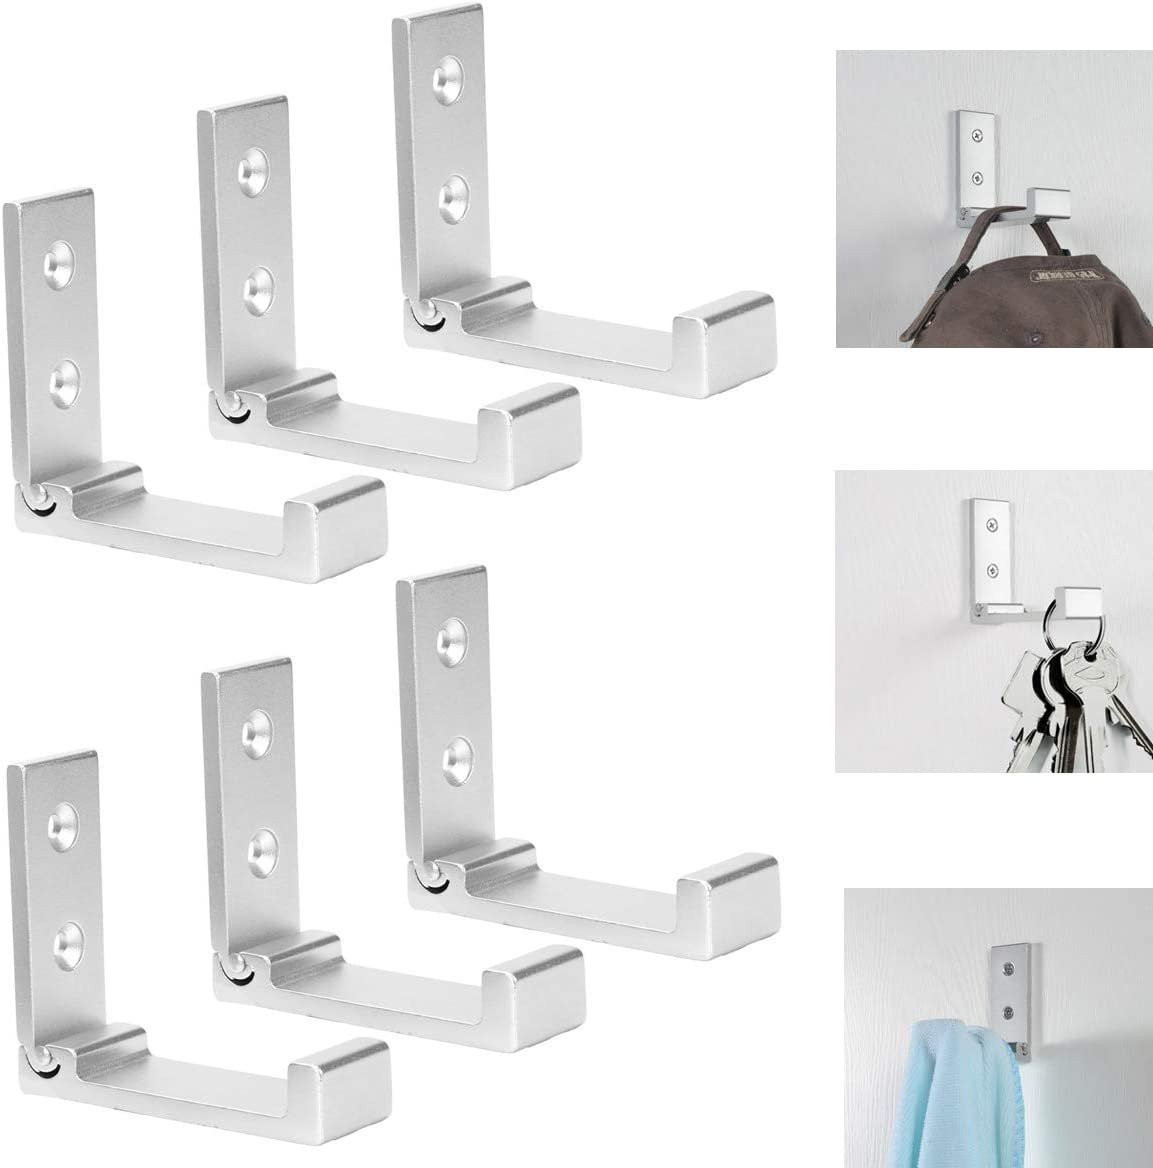 VinBee 6pcs 3 inch Aluminium Alloy Folding Clothes Hook, Coat Rack Single Hook for Bathroom Kitchen Living Room (Silver)